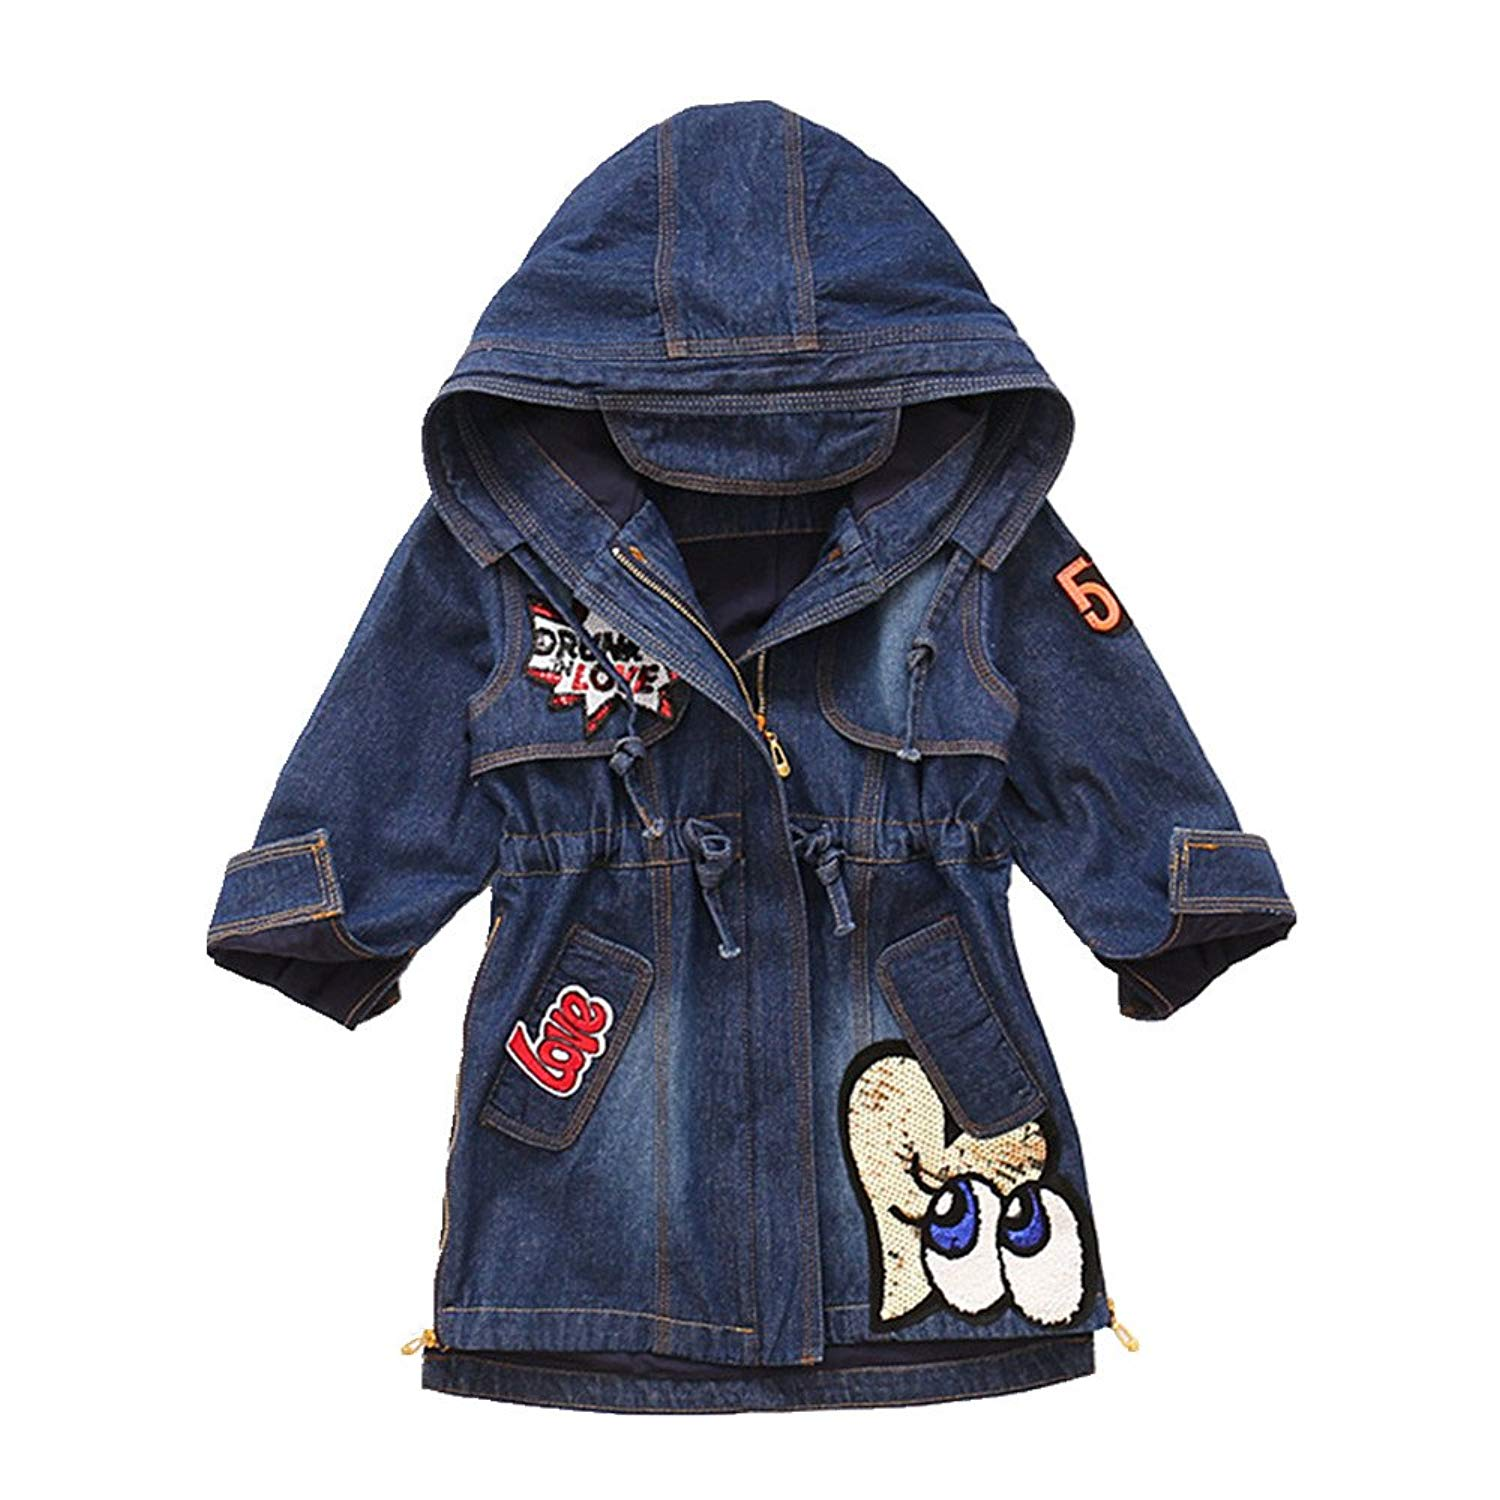 Star Flower Girls' Denim Jackets Size 14 7-16 Wrap Coat with Hood